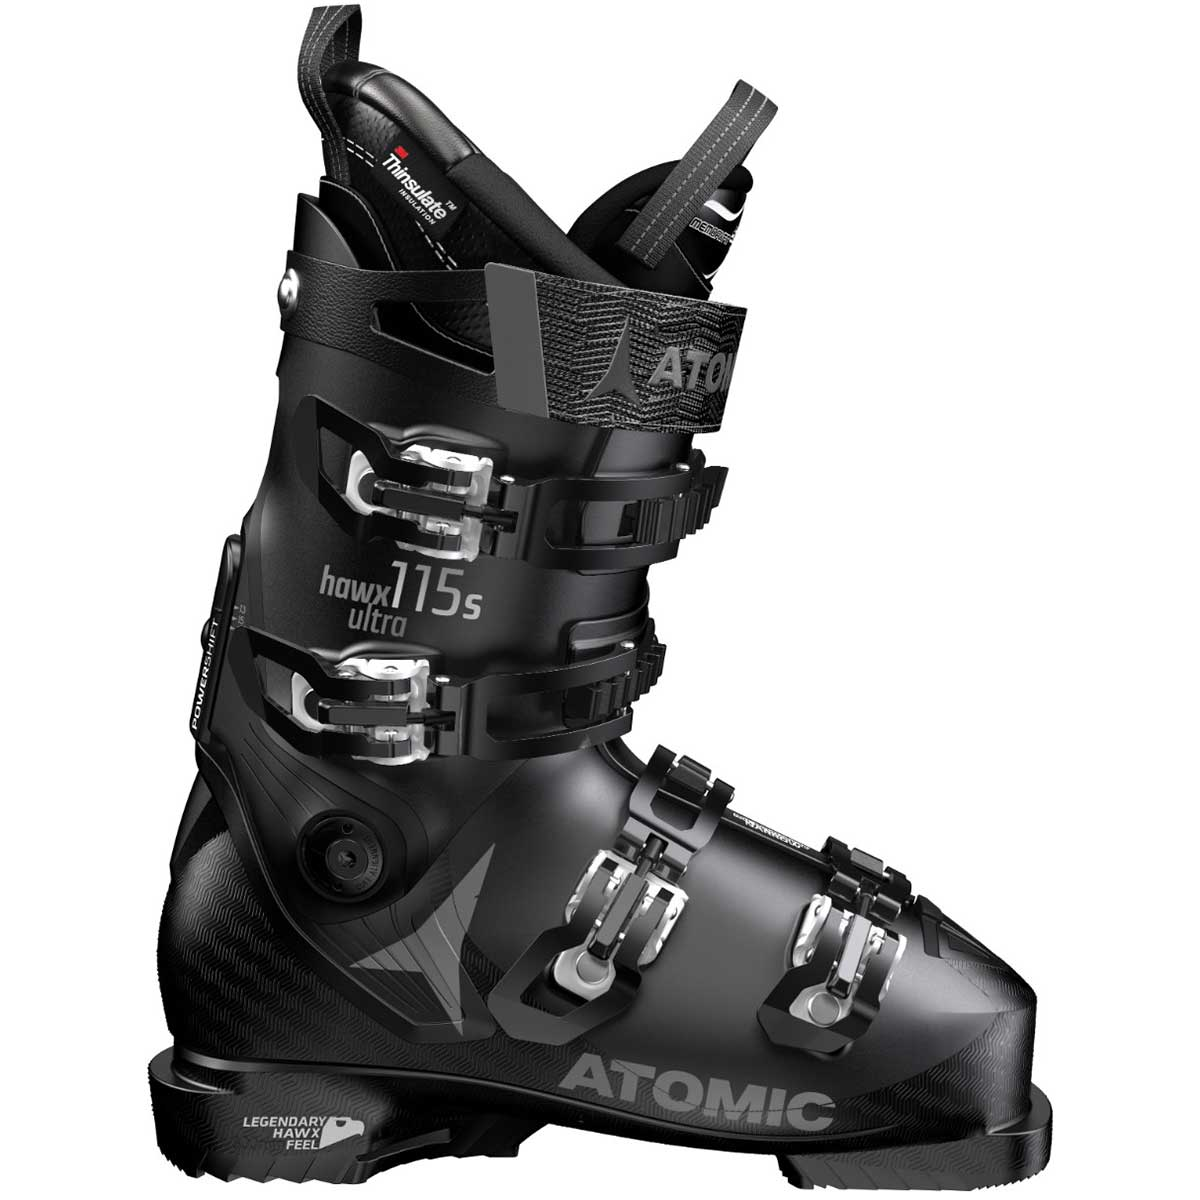 Atomic women's HAWX Ultra 115 S ski boot in black and white